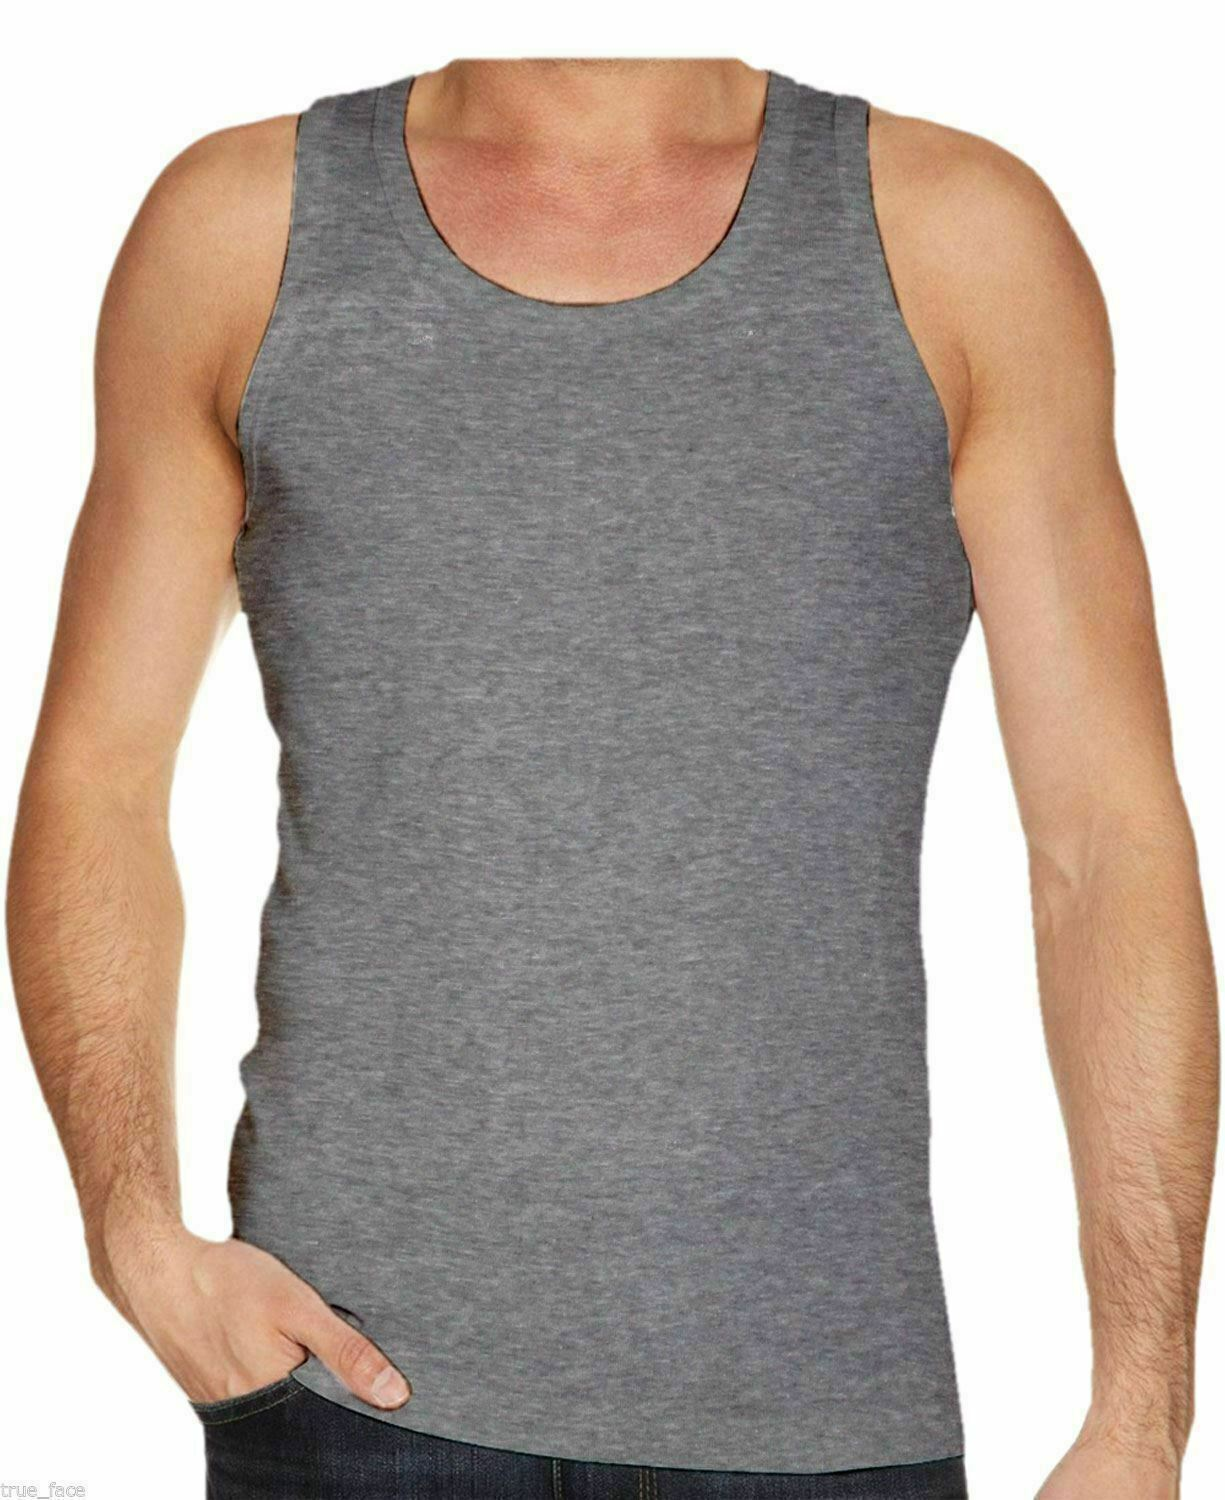 MORAJ SLEEVELESS MAN COTTON 100/% TANK TOP T-SHIRT ATHLETIC VEST 2 MODEL STRAPS